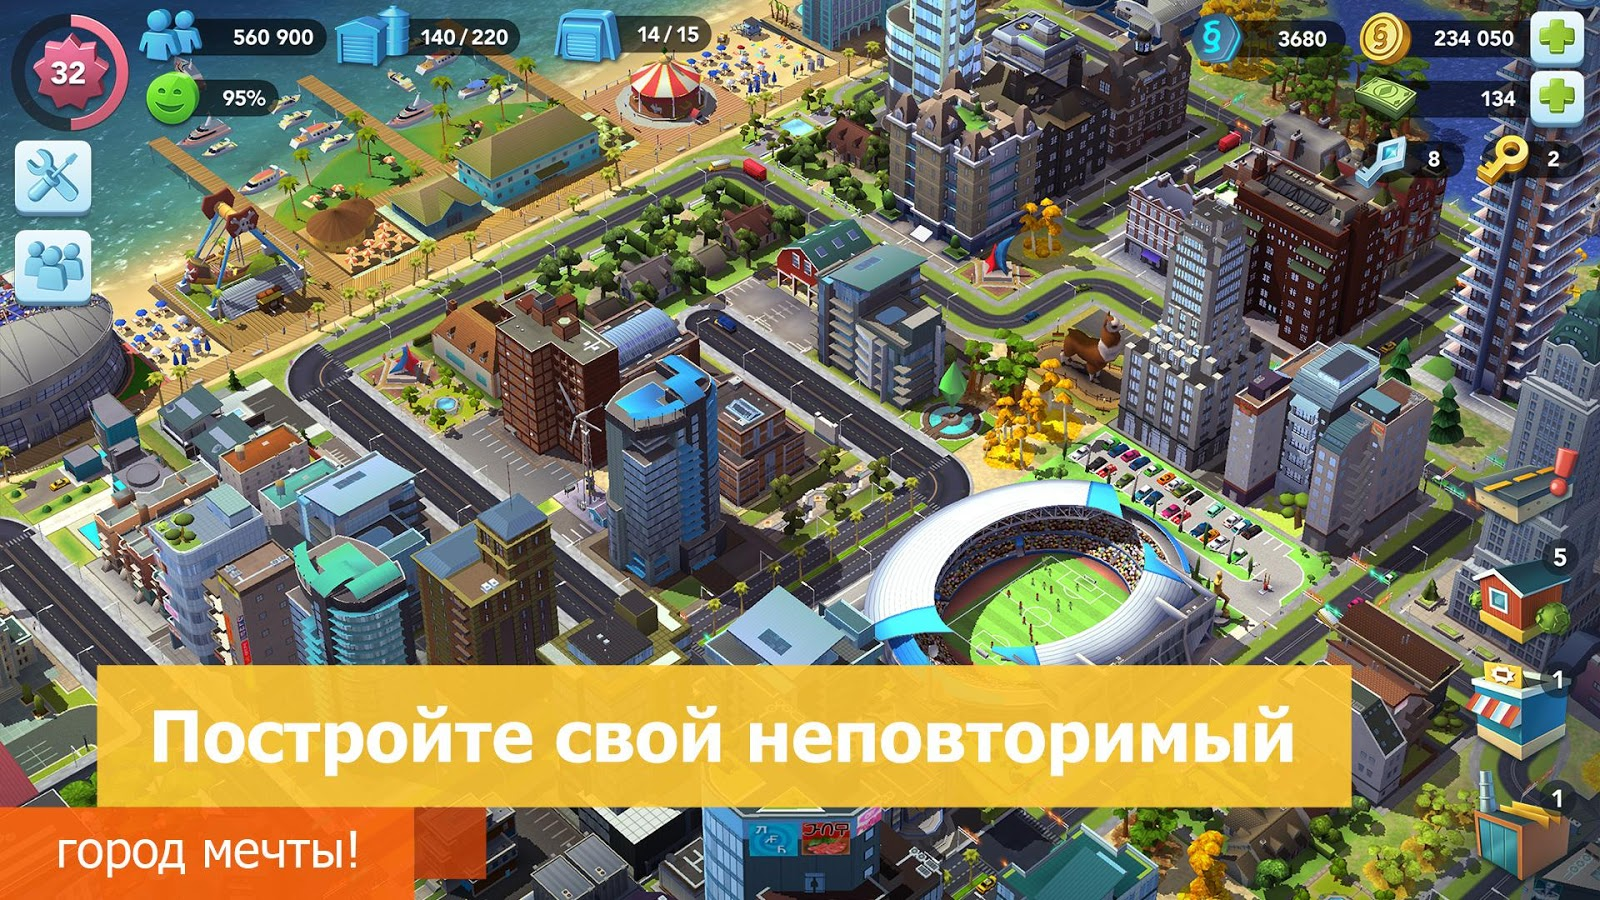 Simcity buildit hack apk no survey no download no survey youtube.